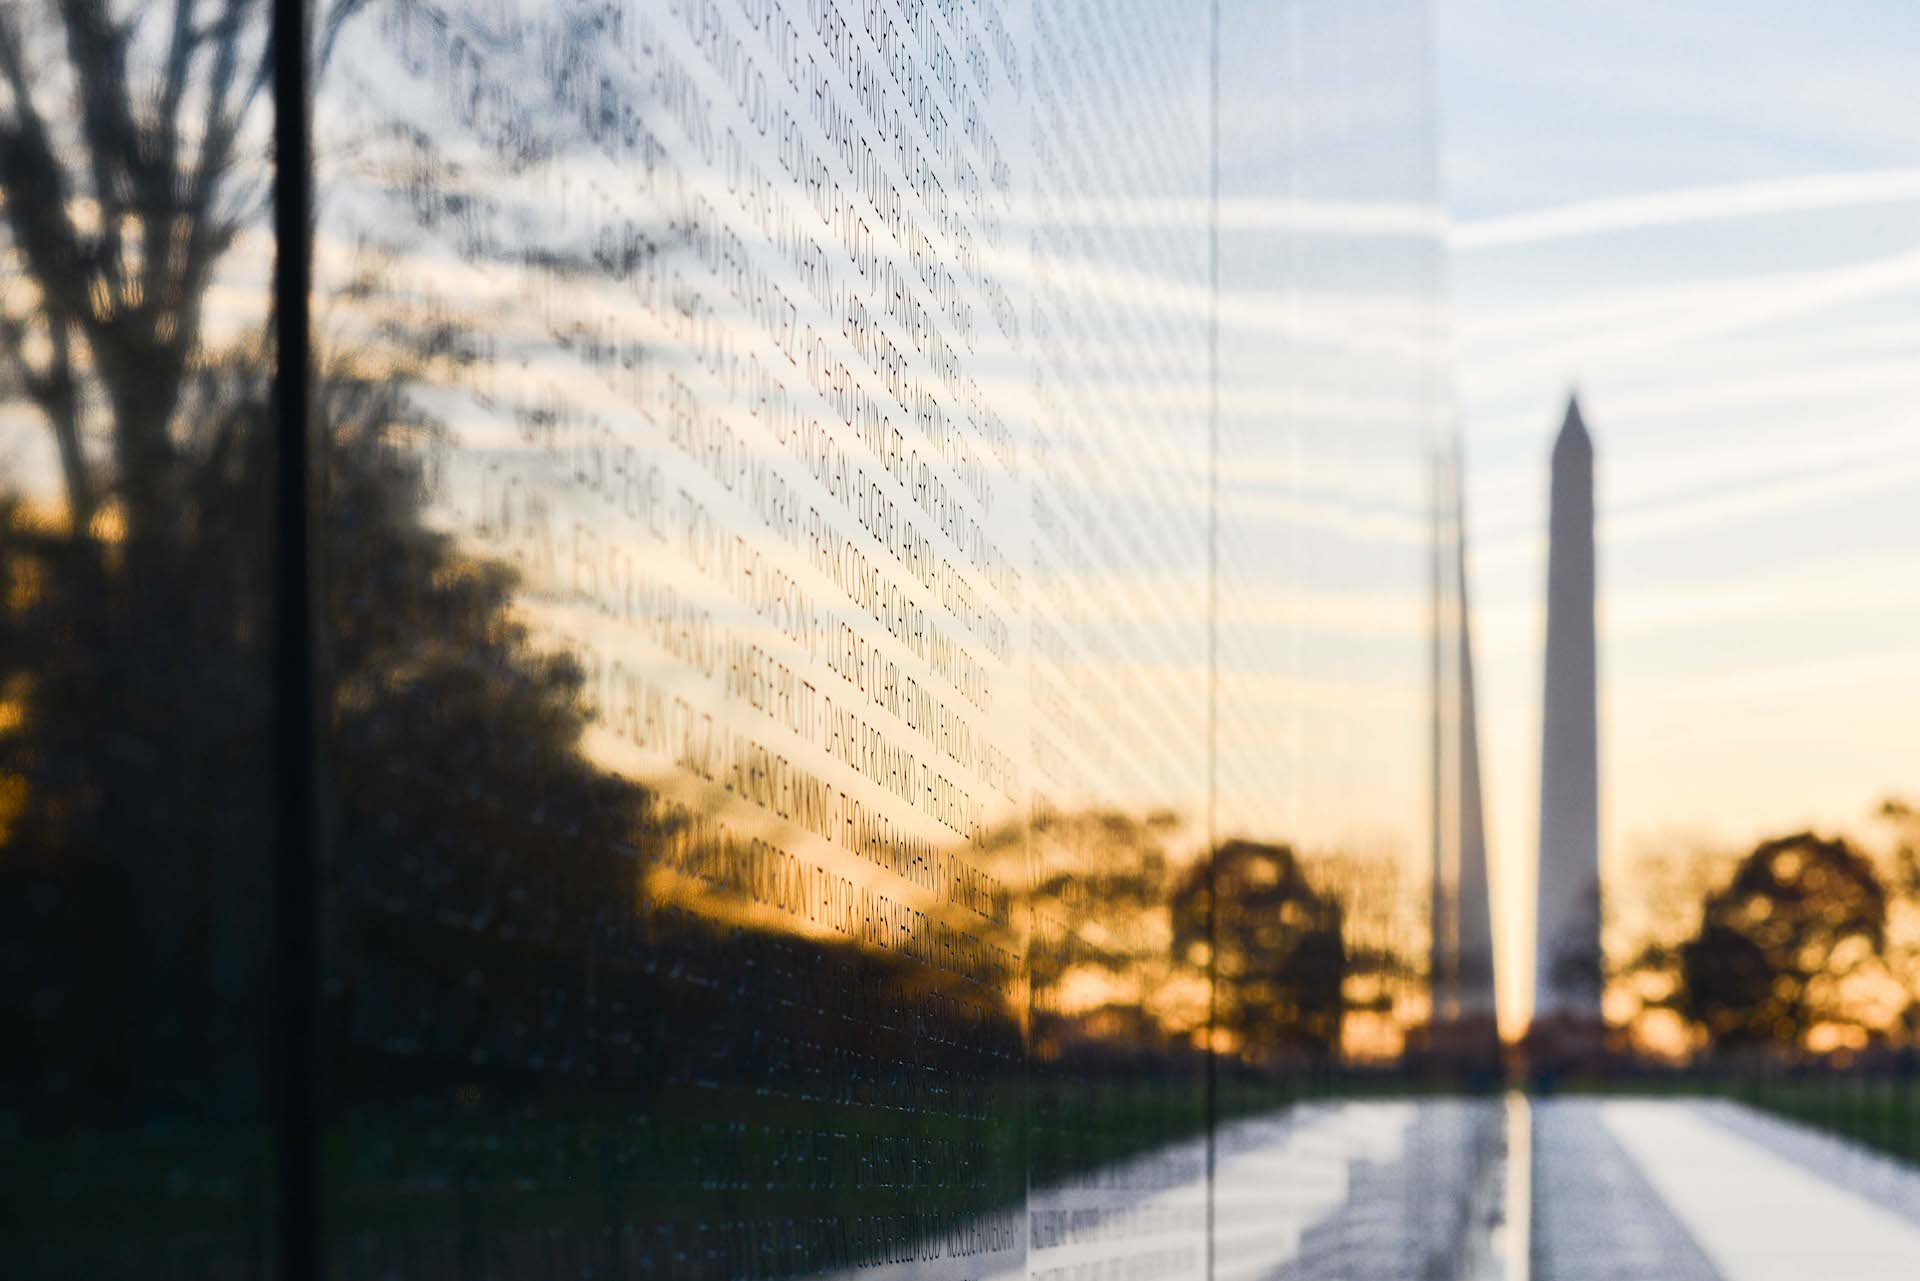 Close up of the names inscribed on the Vietnam Veterans Memorial wall and the Washington Monument in the distance.